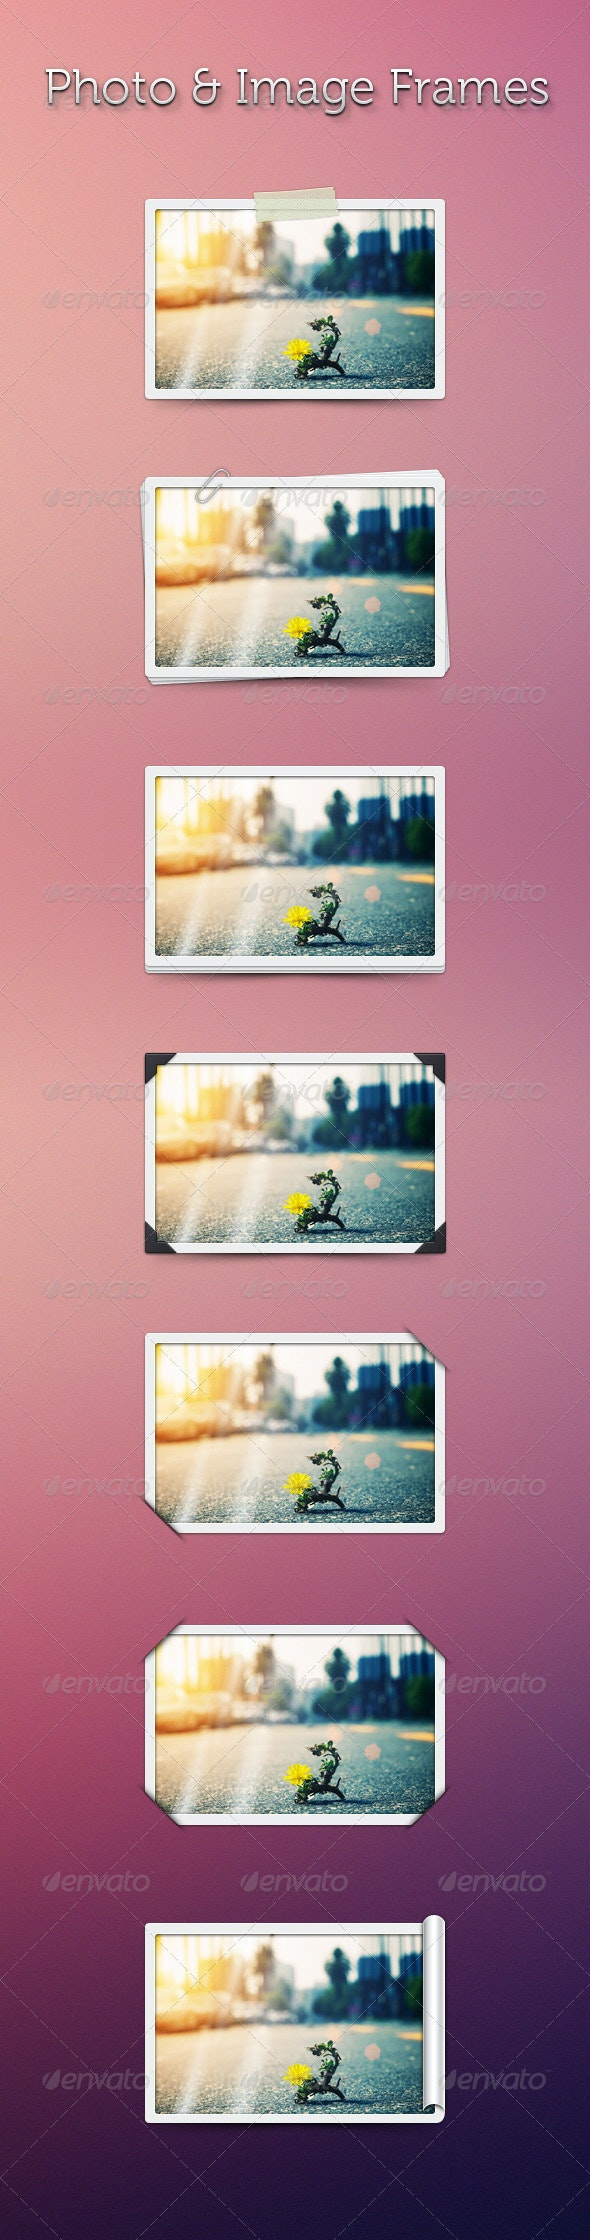 Photo & Image Frames - Sliders & Features Web Elements